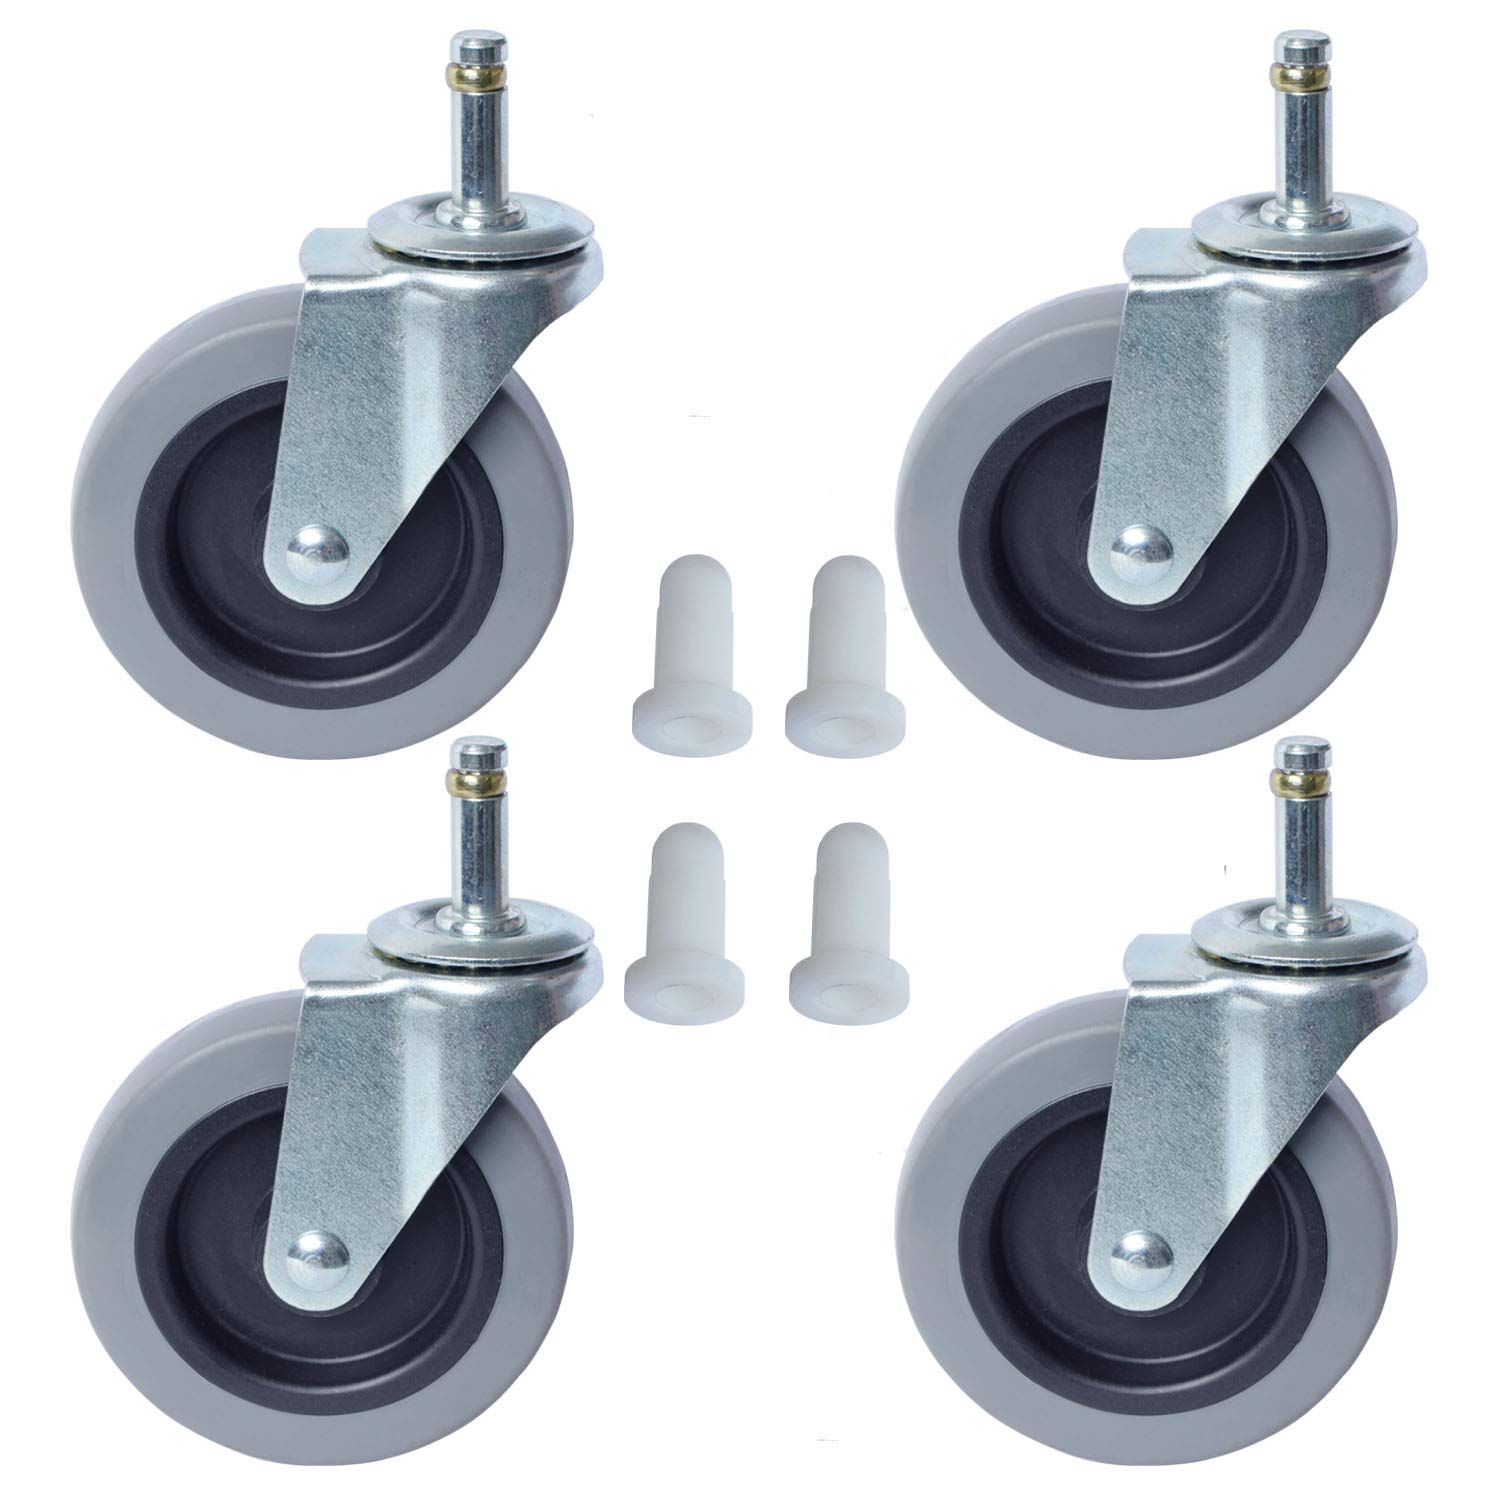 AAGUT 4 Inch Rubbermaid Cart Caster Replacement Wheels, Swivel Stem Casters, 7/16''x 1-3/8'' Stem TPR Rubber Wheel for Rubbermaid Mop Buckets, Pack of 4